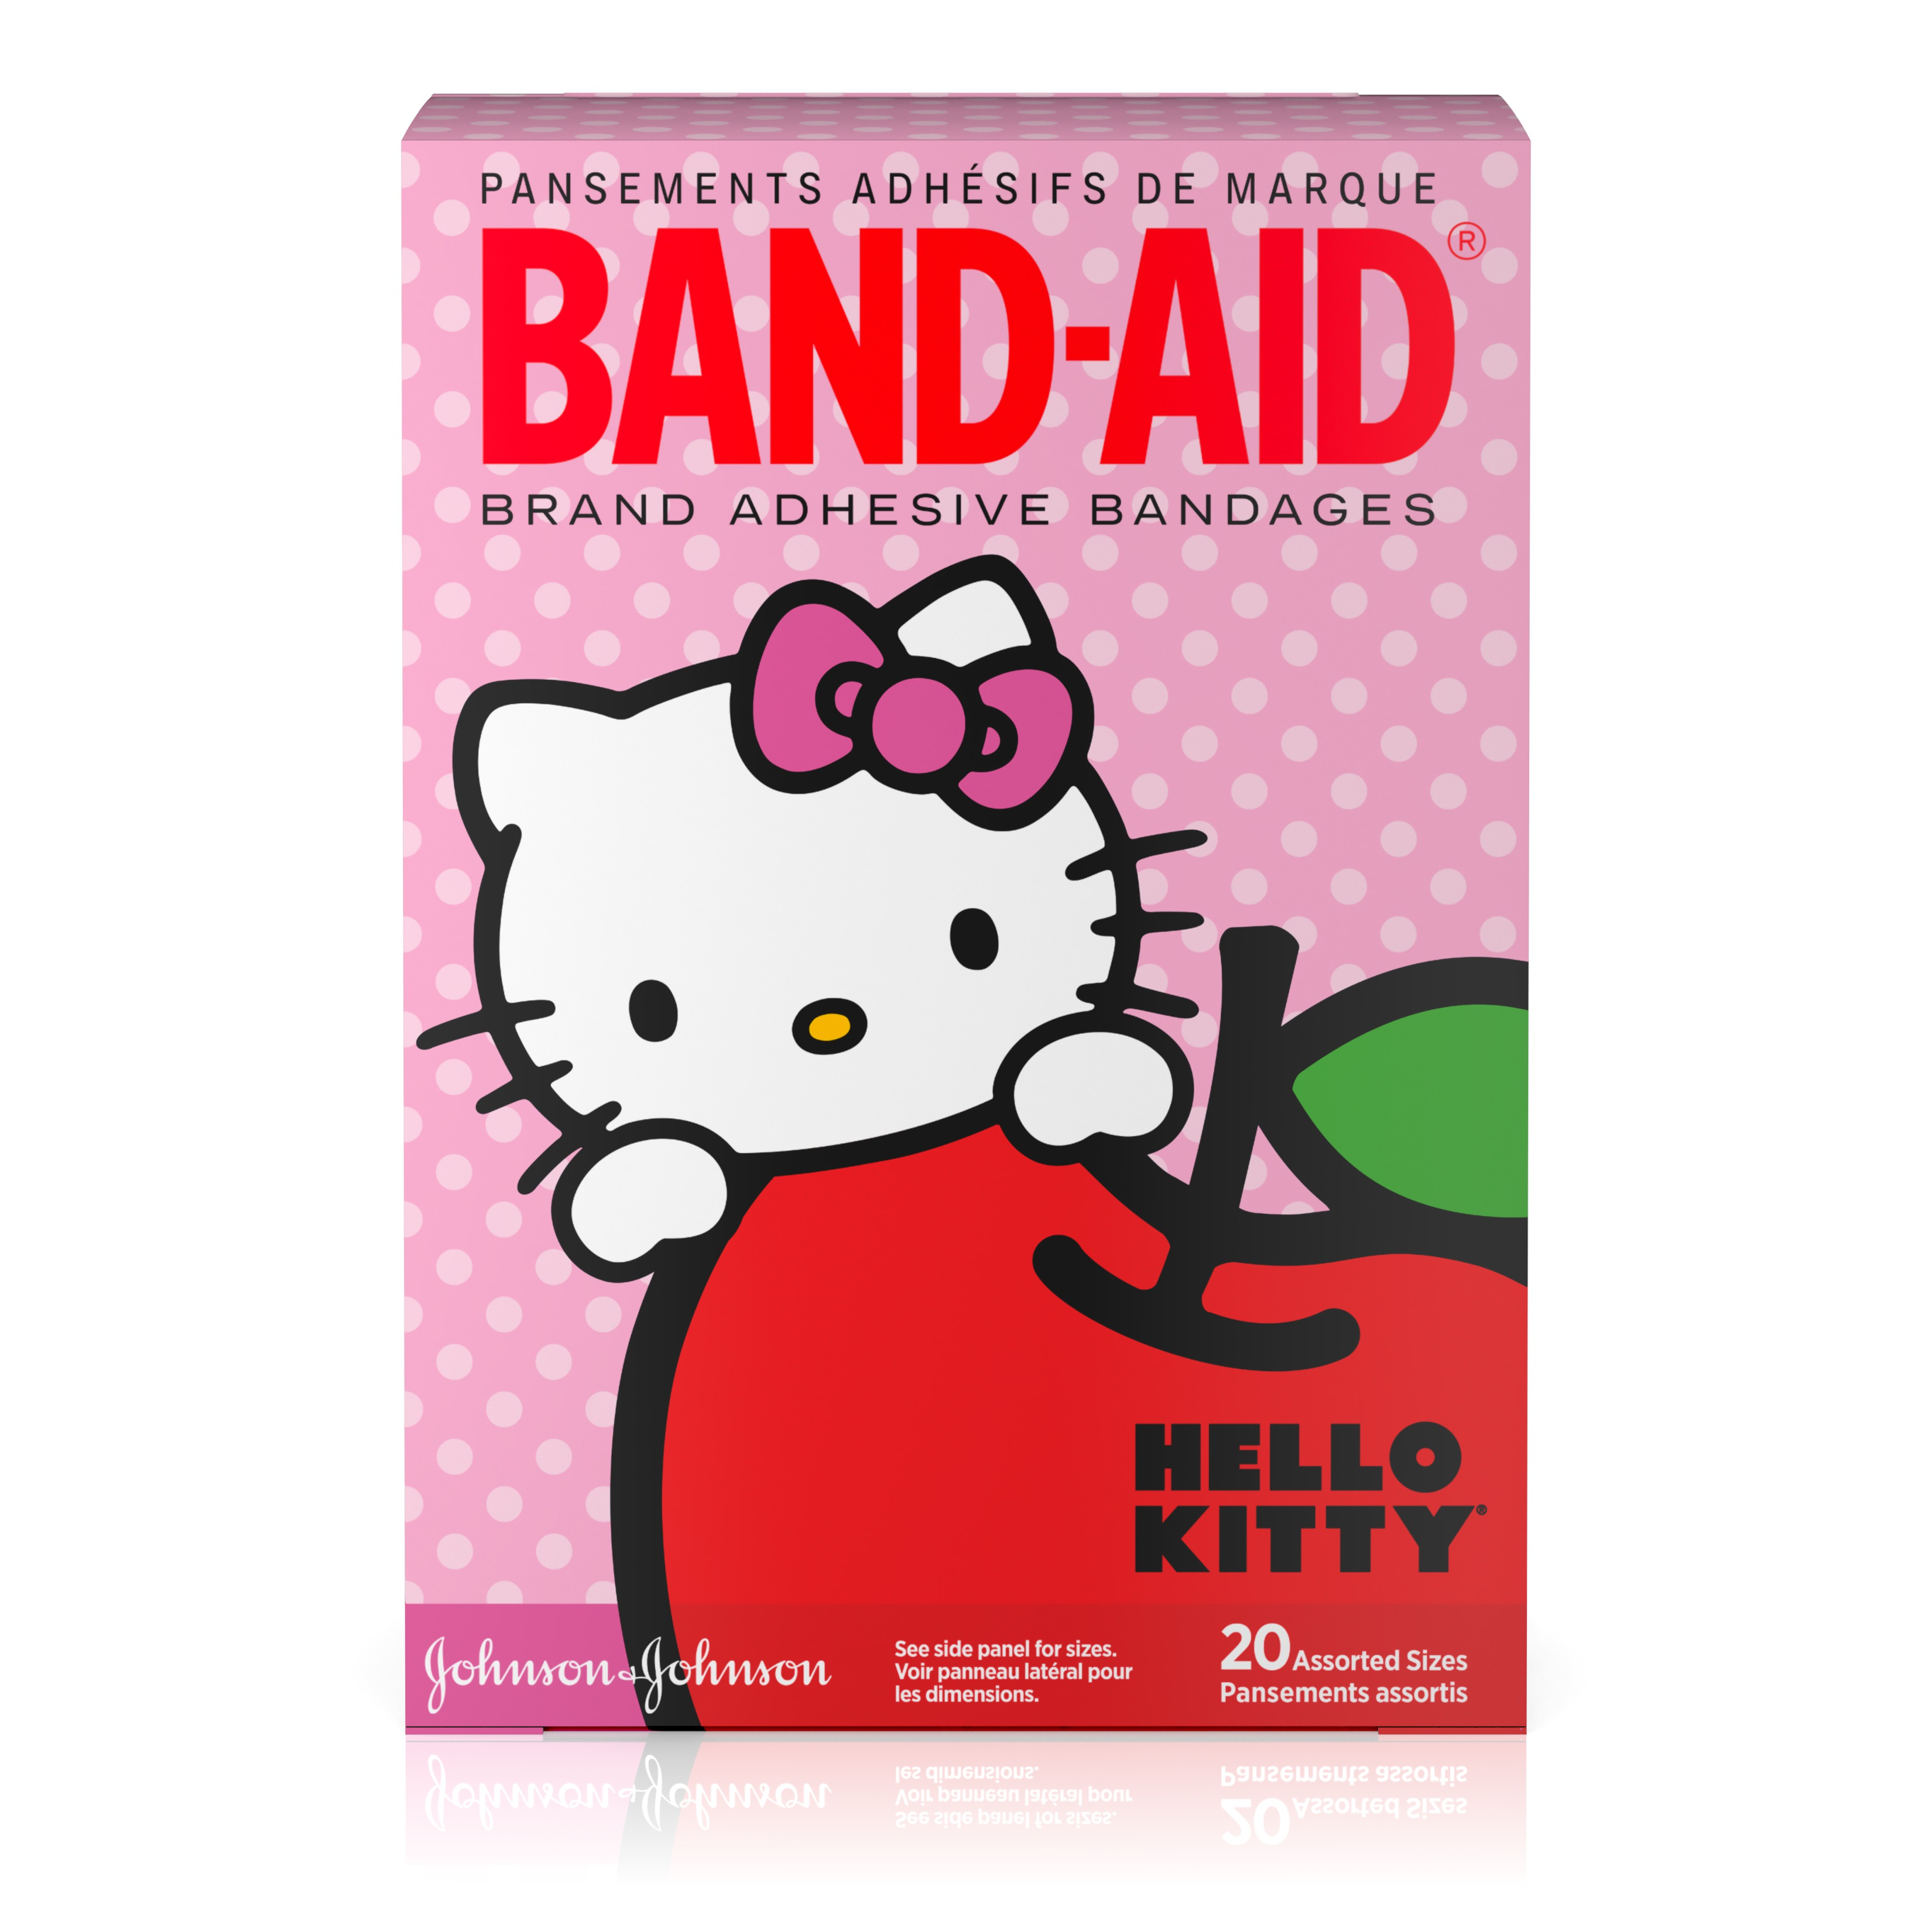 Band-Aid Adhesive Bandages, Hello Kitty, Assorted Sizes 20 ct